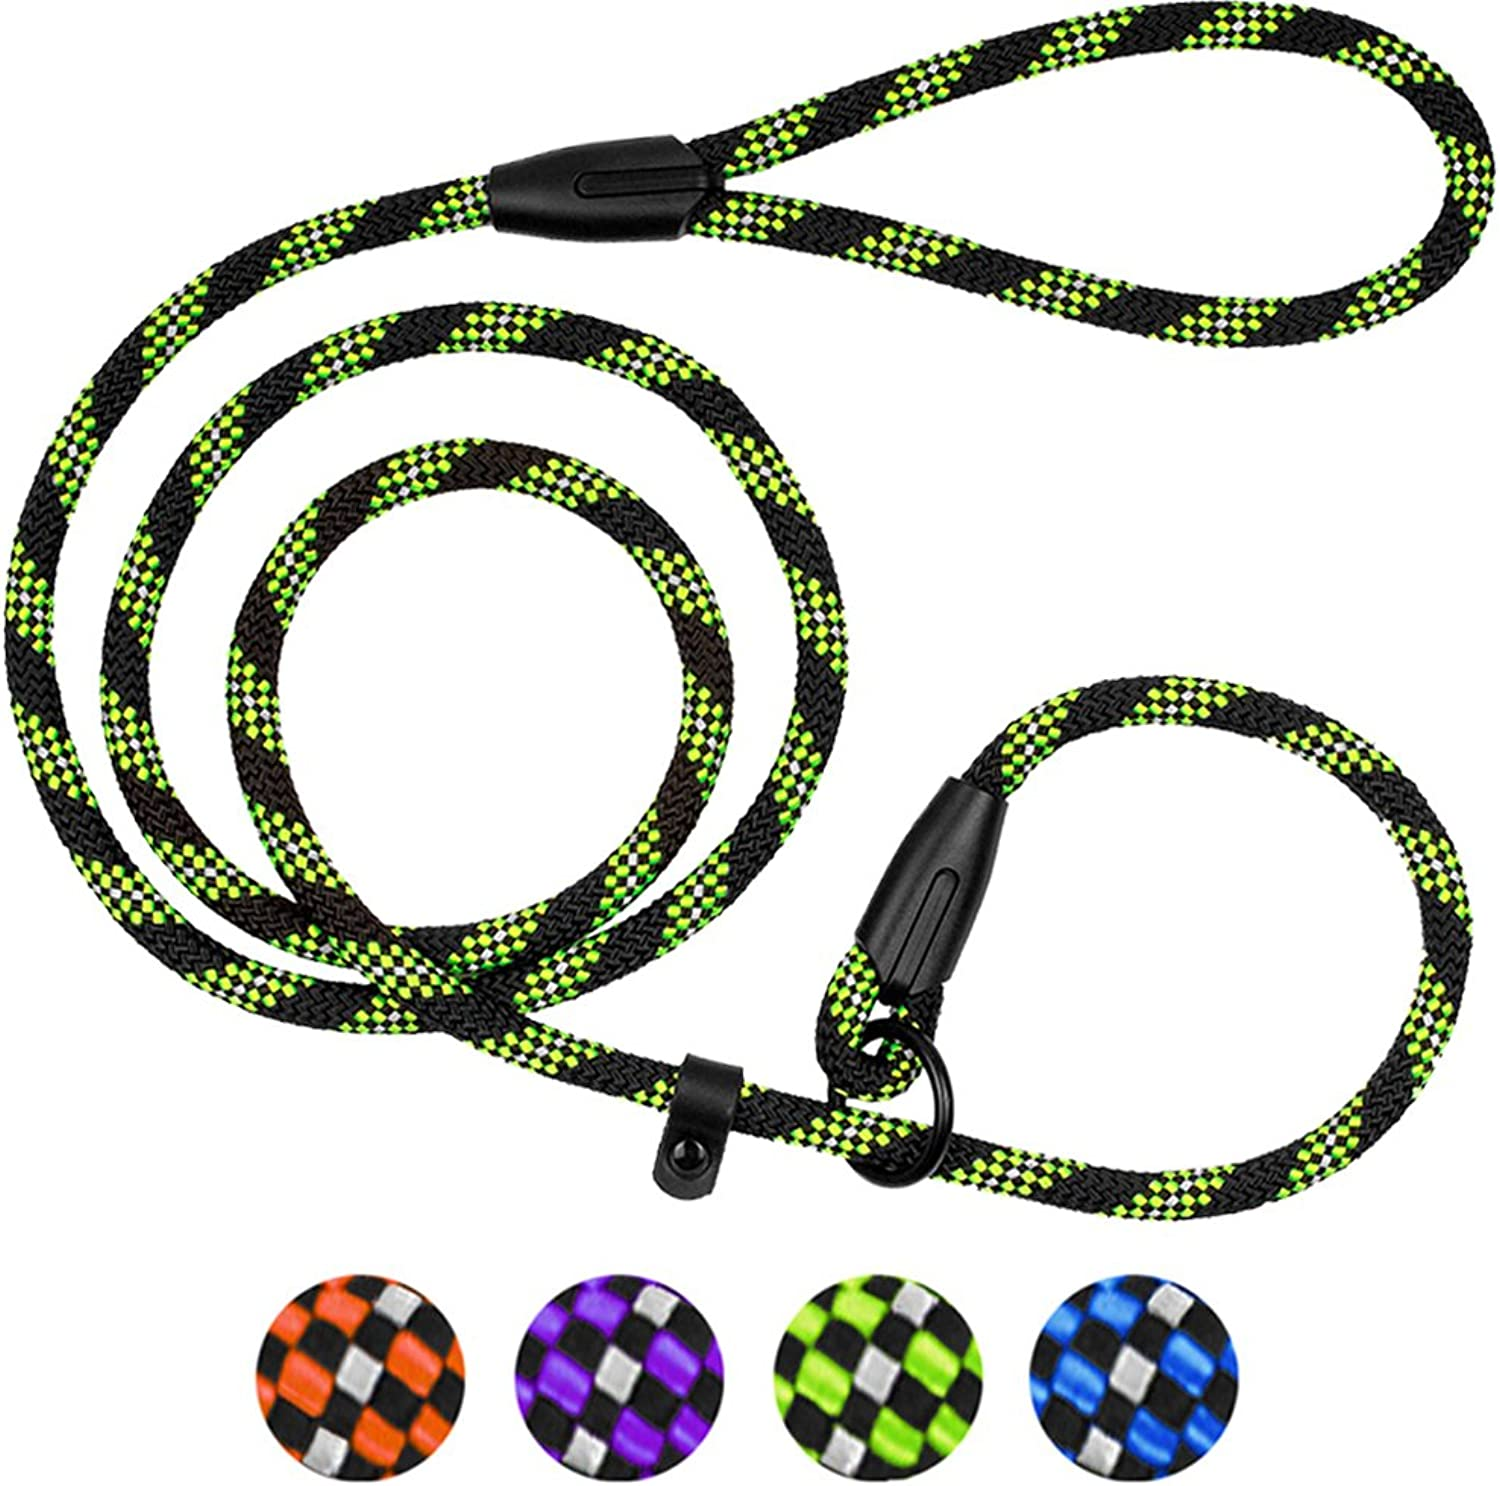 BronzeDog Rope Dog Leash 6ft Mountain Climbing Training Slip Show Lead Braided Reflective Leashes for Small Medium Large Dogs (S M Slip Show Lead, Green)